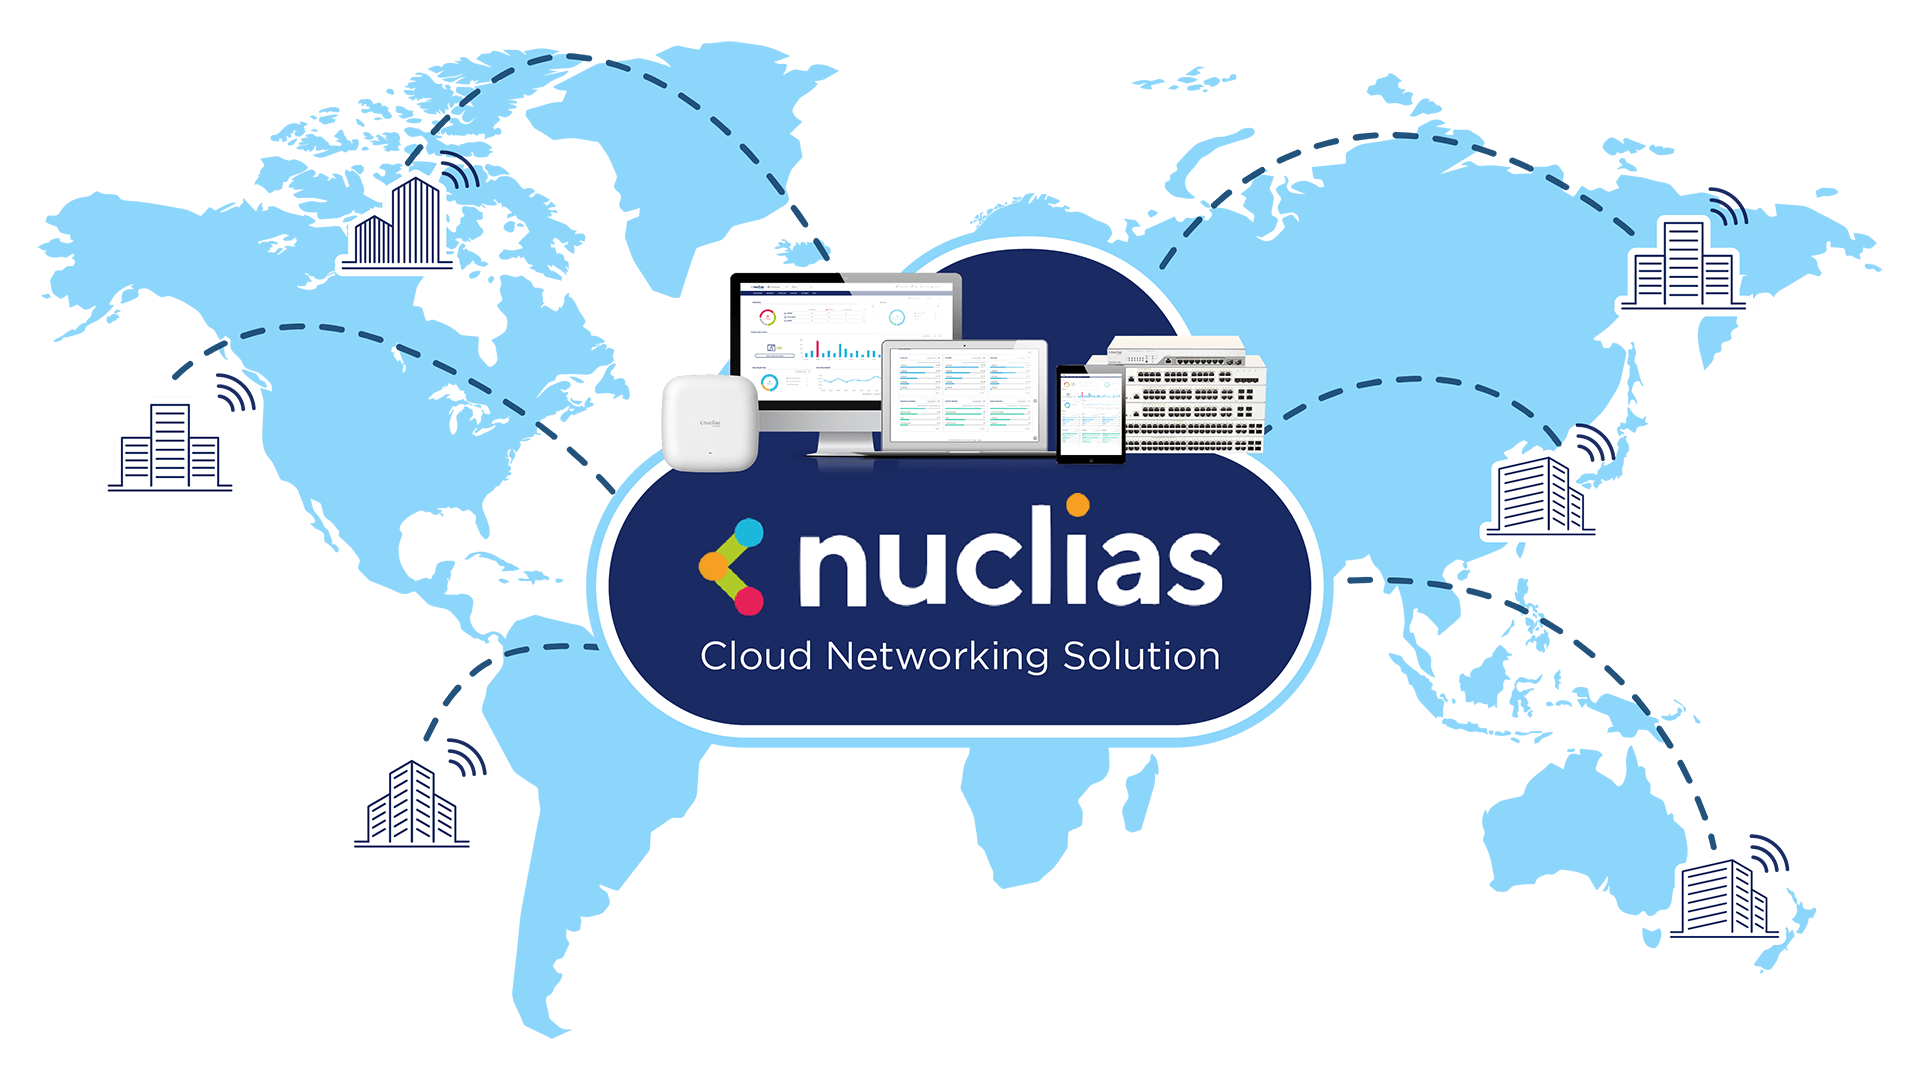 Nuclias Cloud - Cloud networking, easy and simple, as it should be